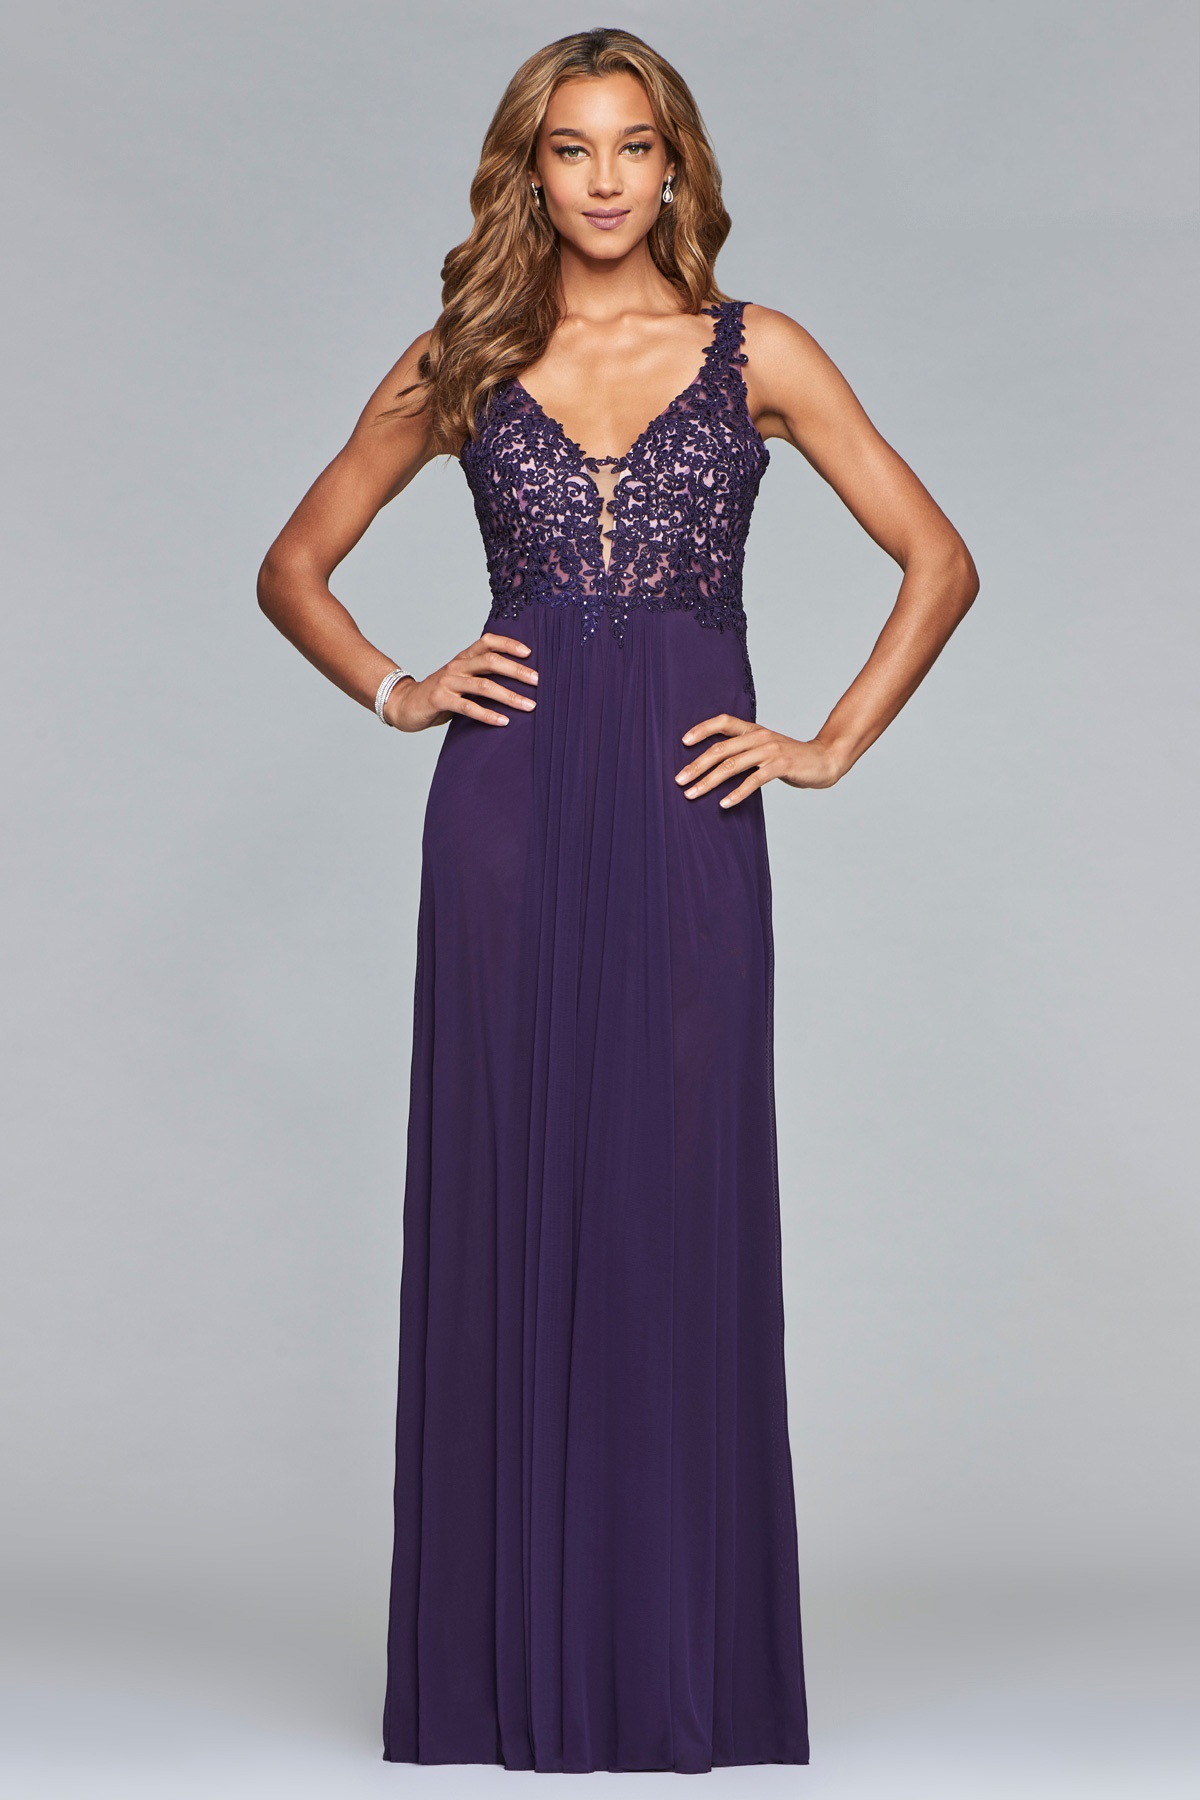 Mesh v-neck dress with lace applique at Ball Gown Heaven